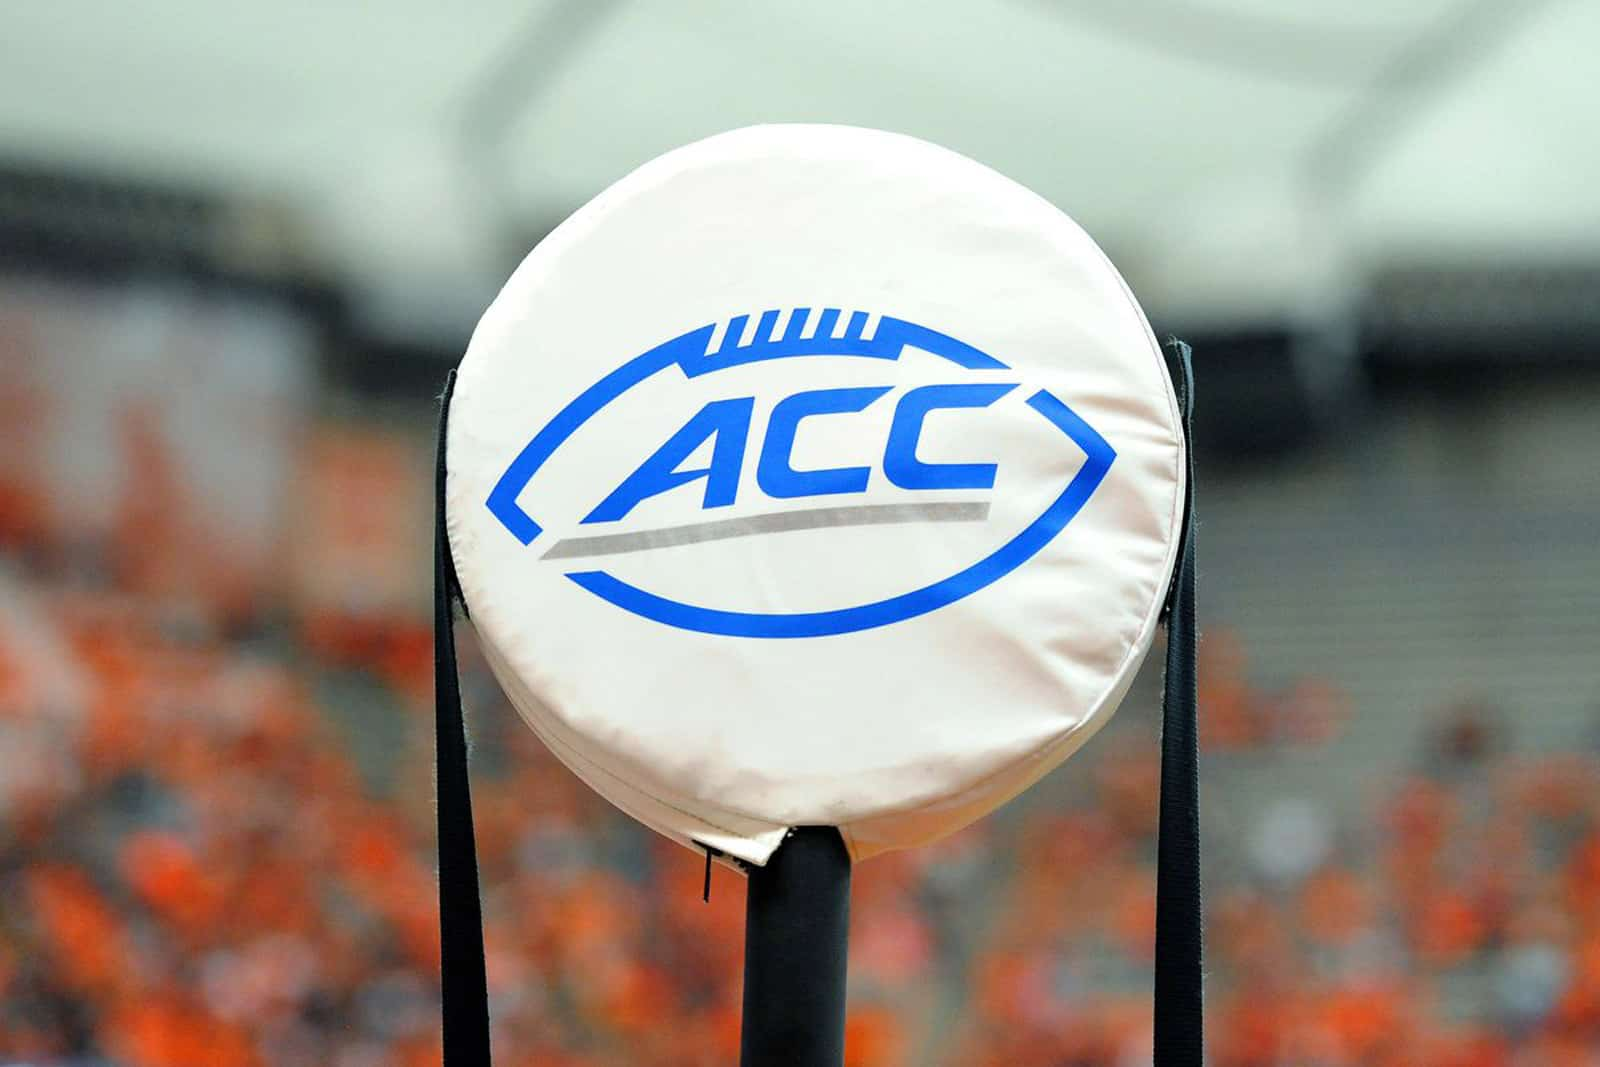 2020 ACC Football Schedule